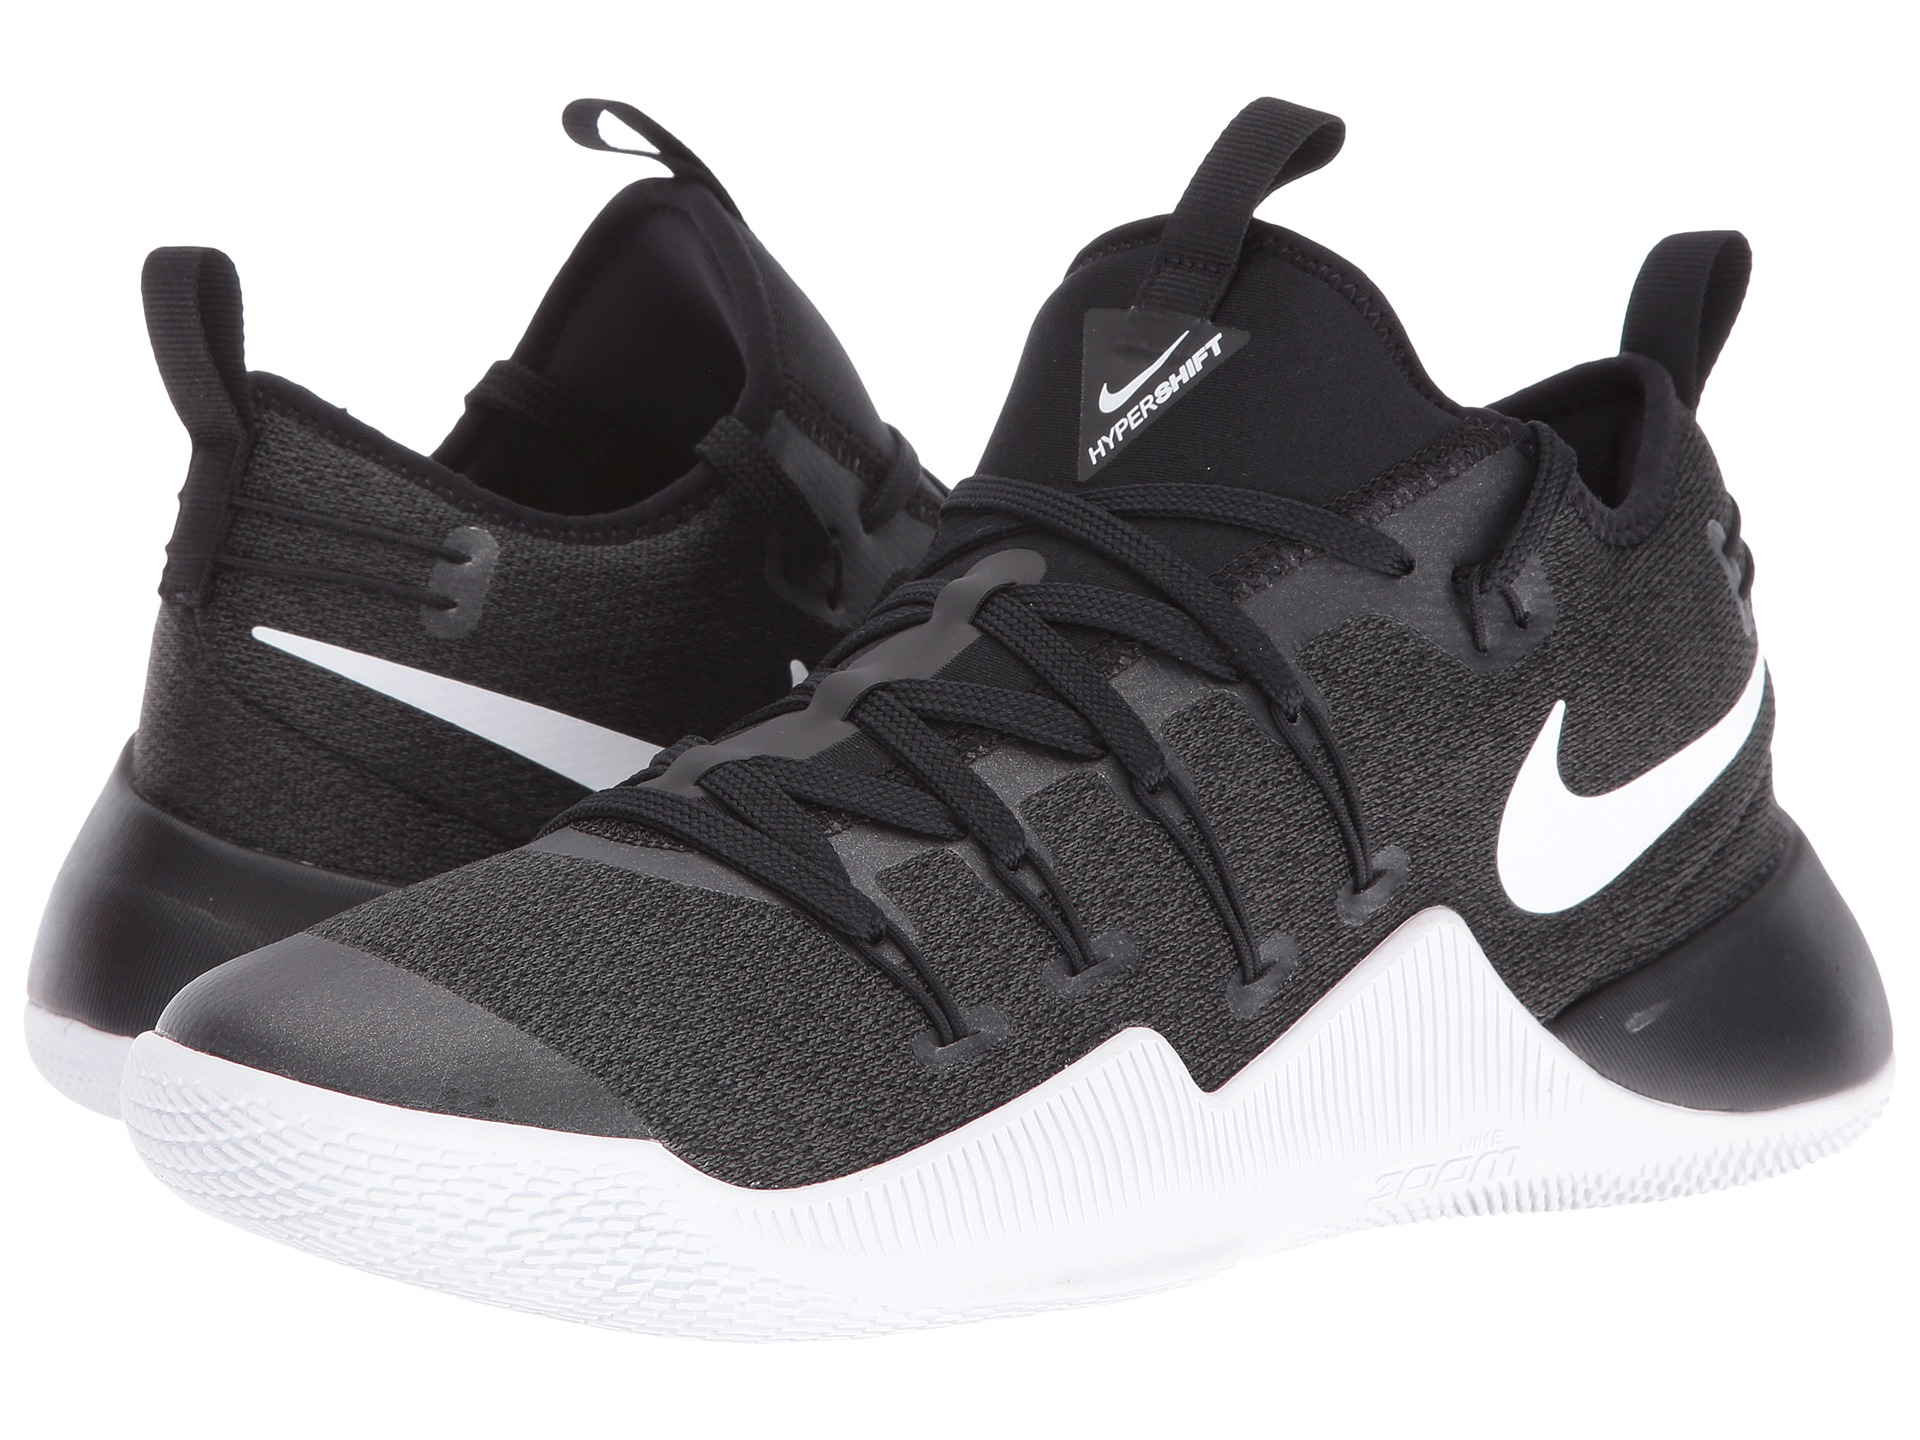 49a3c55af464 7cf75 f83cd  store nike hypershift zappos . 76124 e09a4